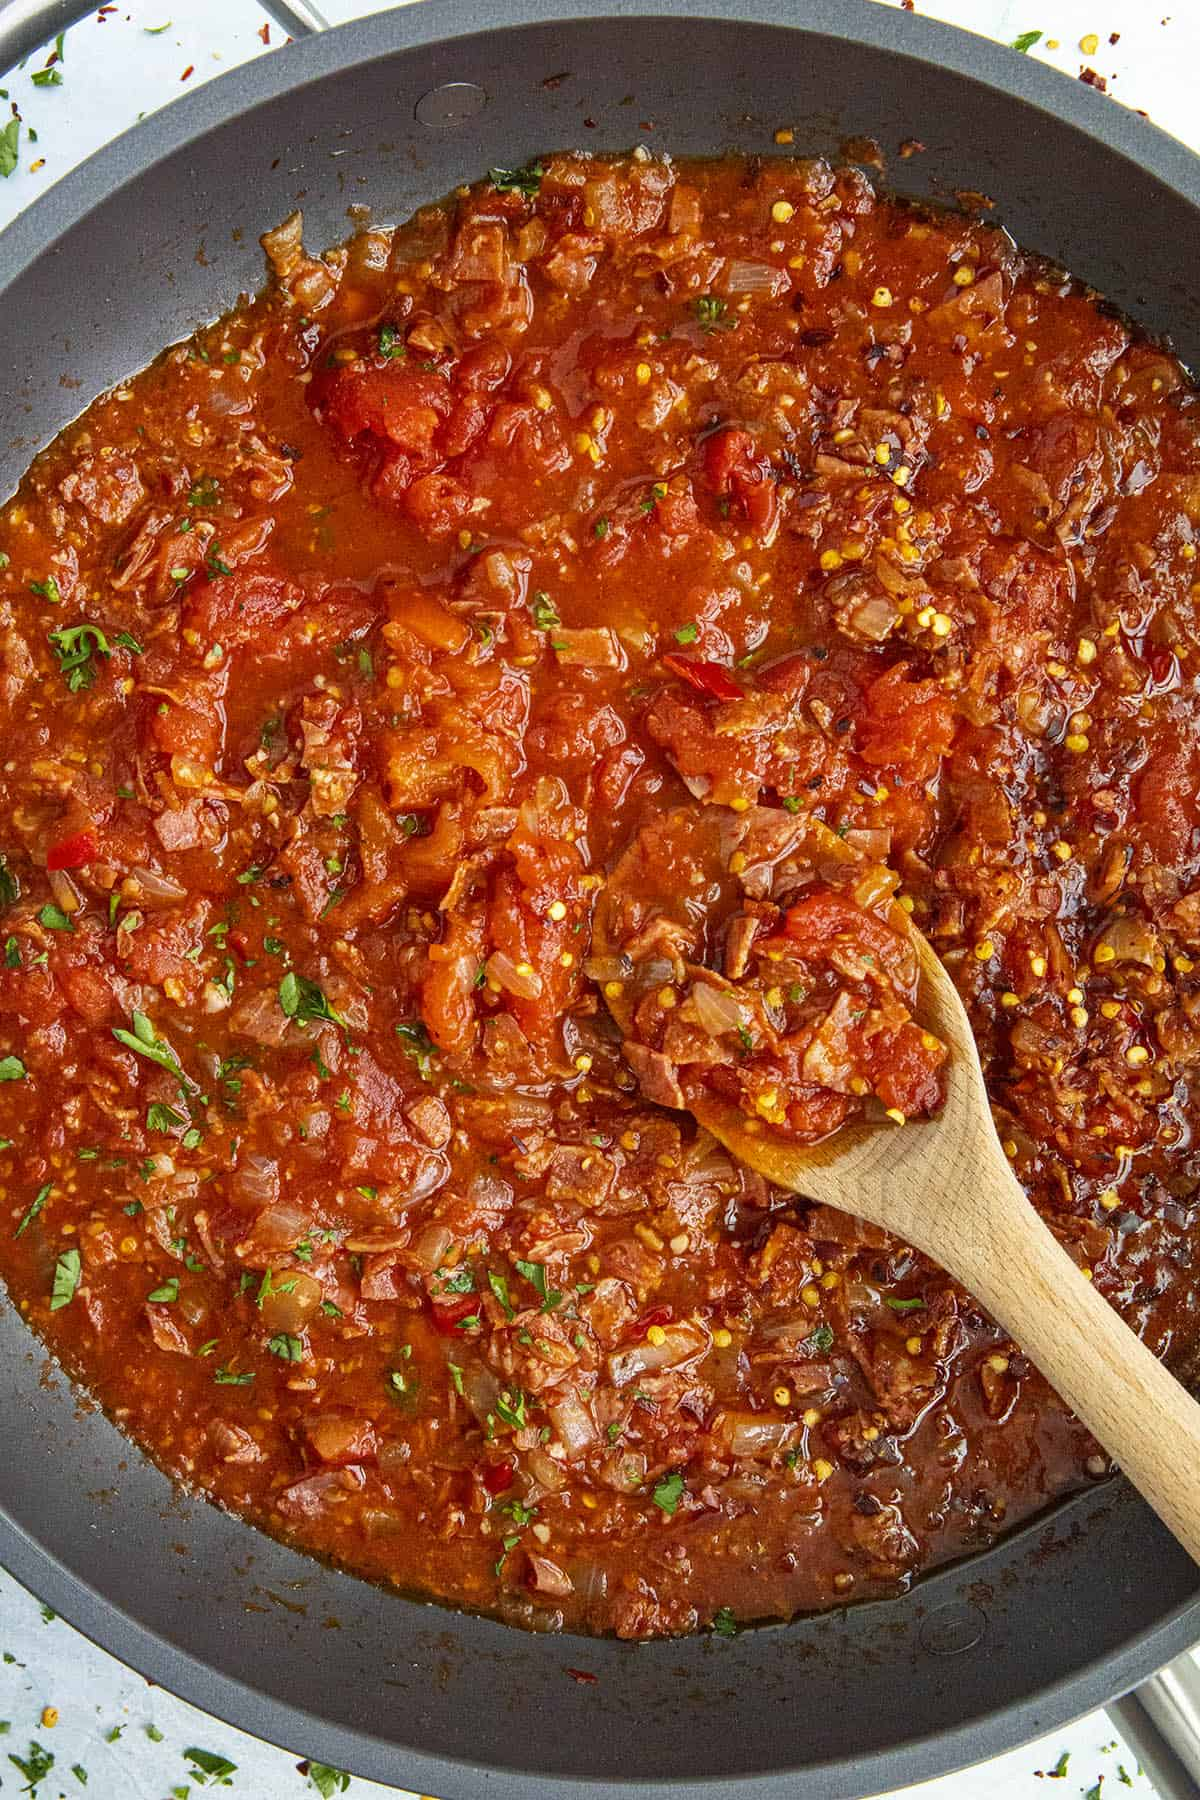 Amatriciana sauce in a pan